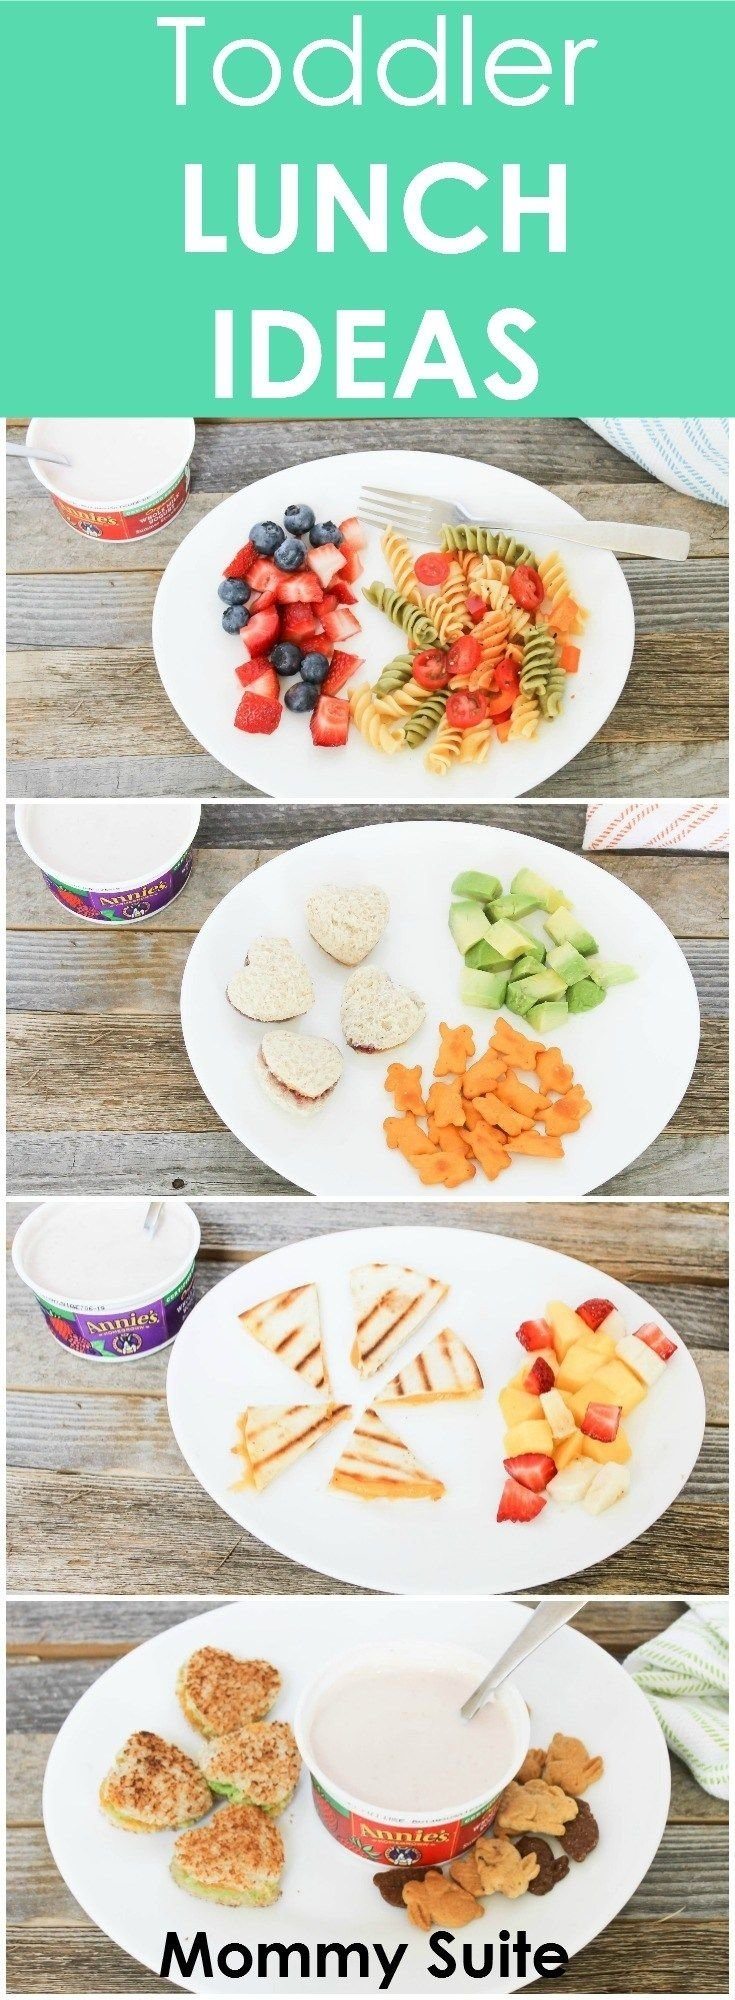 Lunch Ideas For Toddlers For Daycare